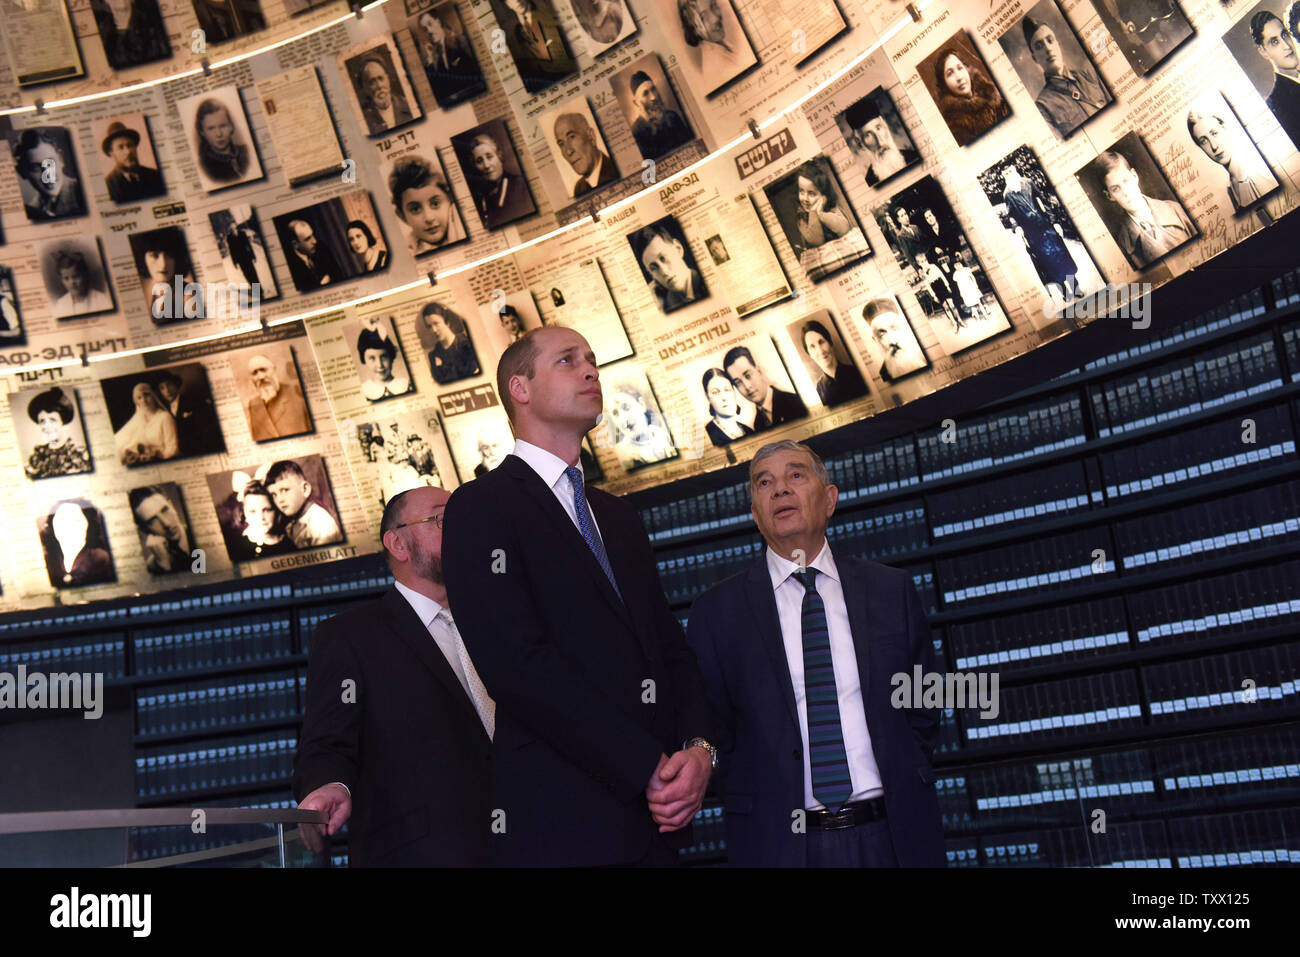 (C)Prince William, the Duke of Cambridge, is joined by (L) Chief Rabbi of the UK, Ephraim Mirvis, and (R) Chairman of Yad Vashem, Avner Shalev, in the Hall of Names in the Yad Vashem, the World Holocaust Remembrance Center, in Jerusalem, Israel, June 26, 2018.  Photo by Debbie Hill/UPI - Stock Image